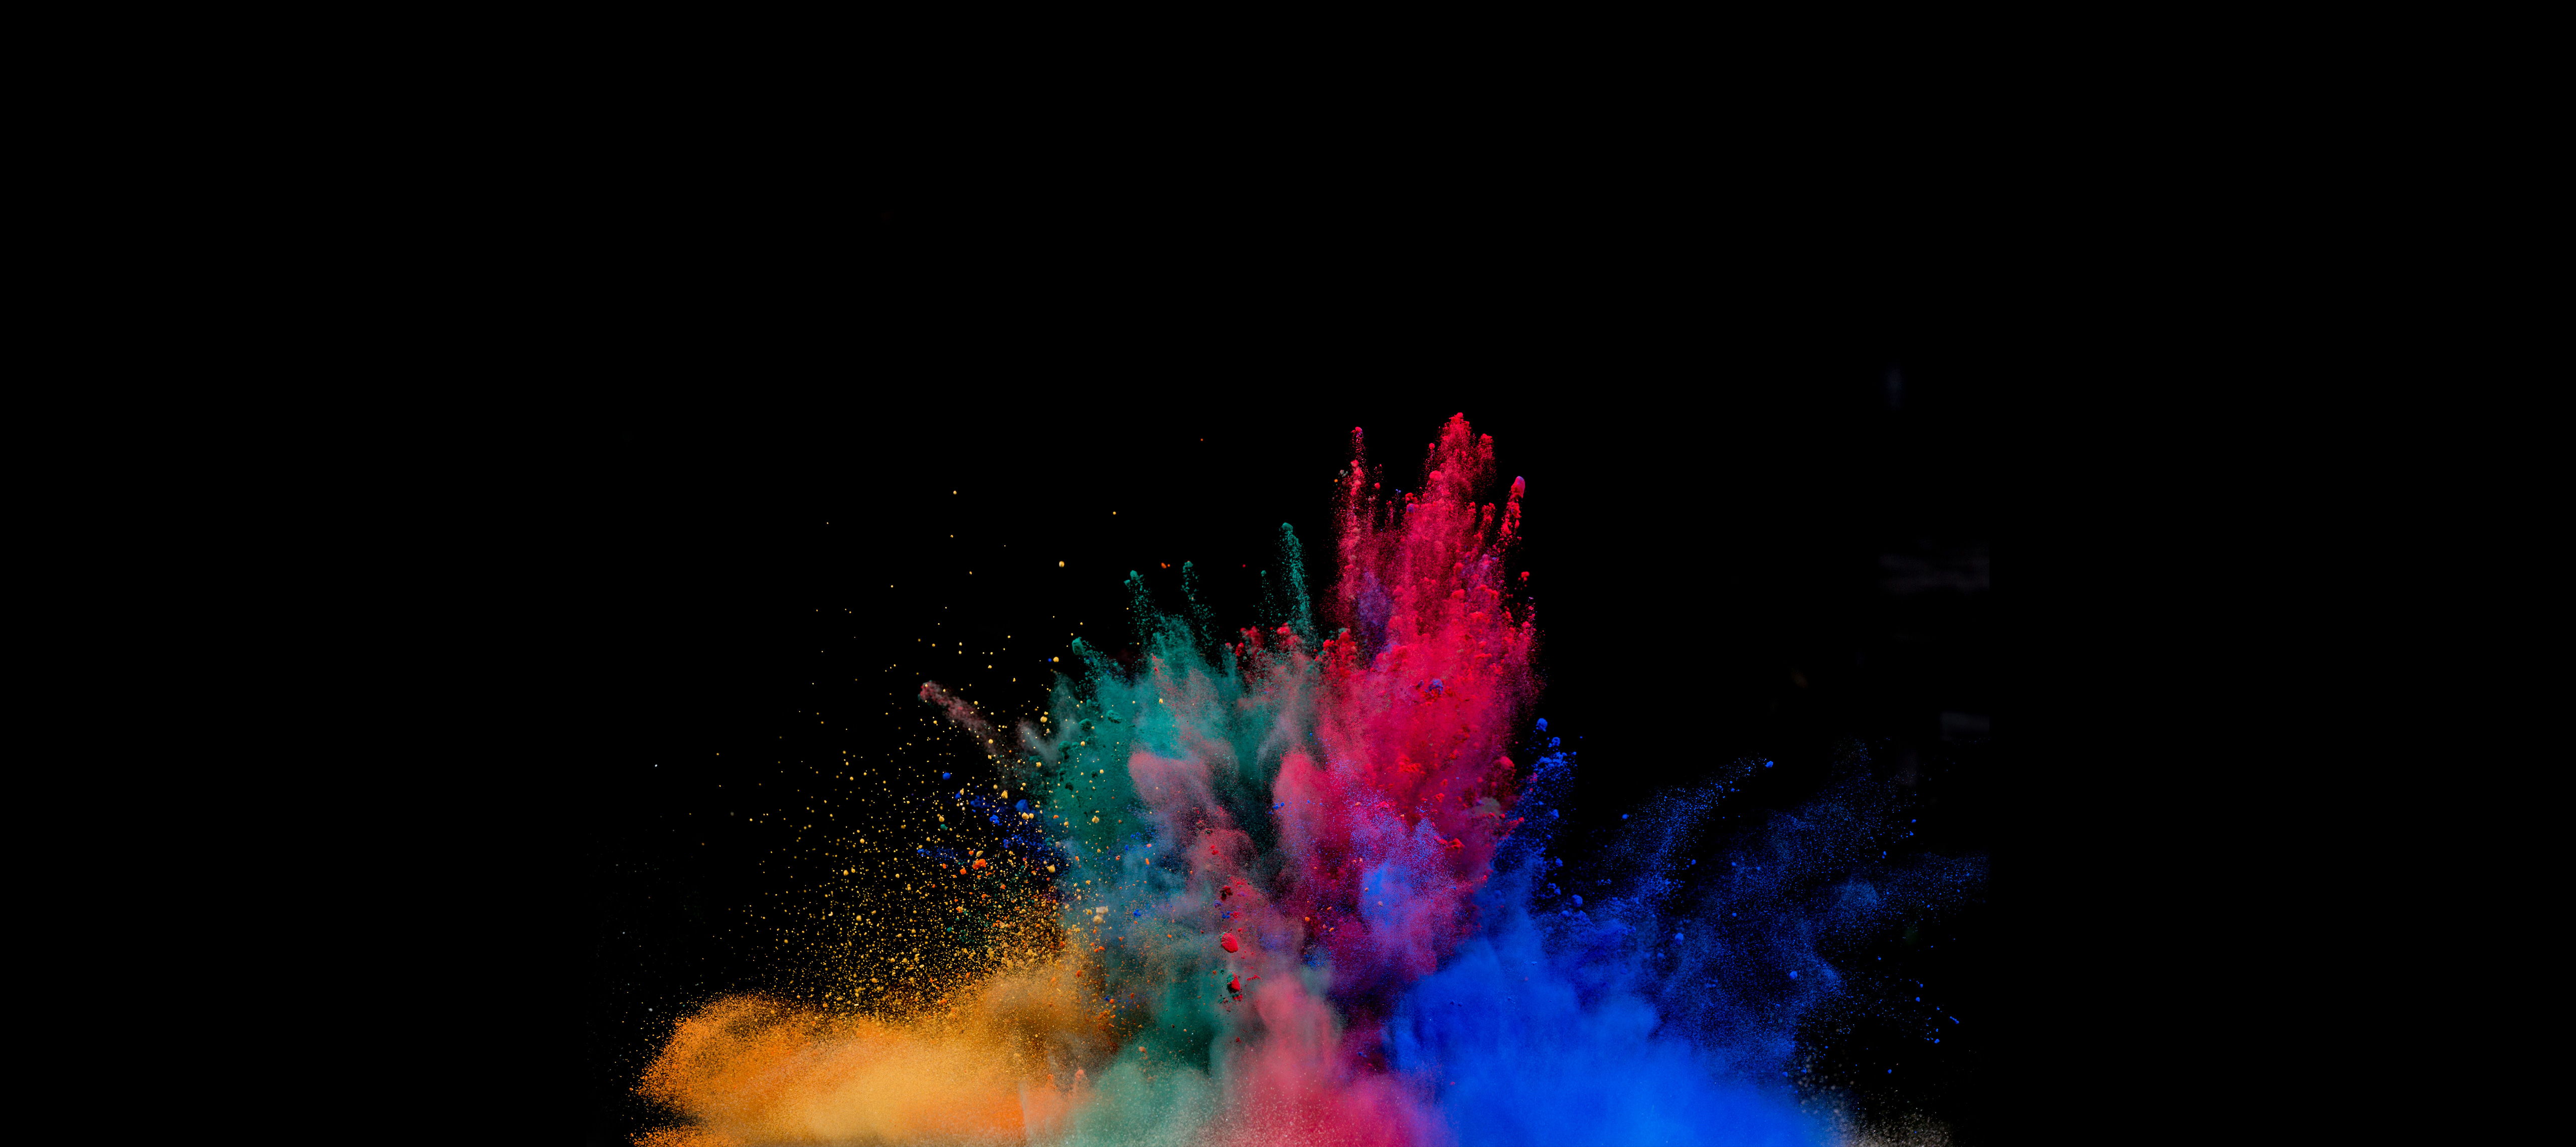 How To Add Color Colorful Powder Explosion Hd Artist 4k Wallpapers